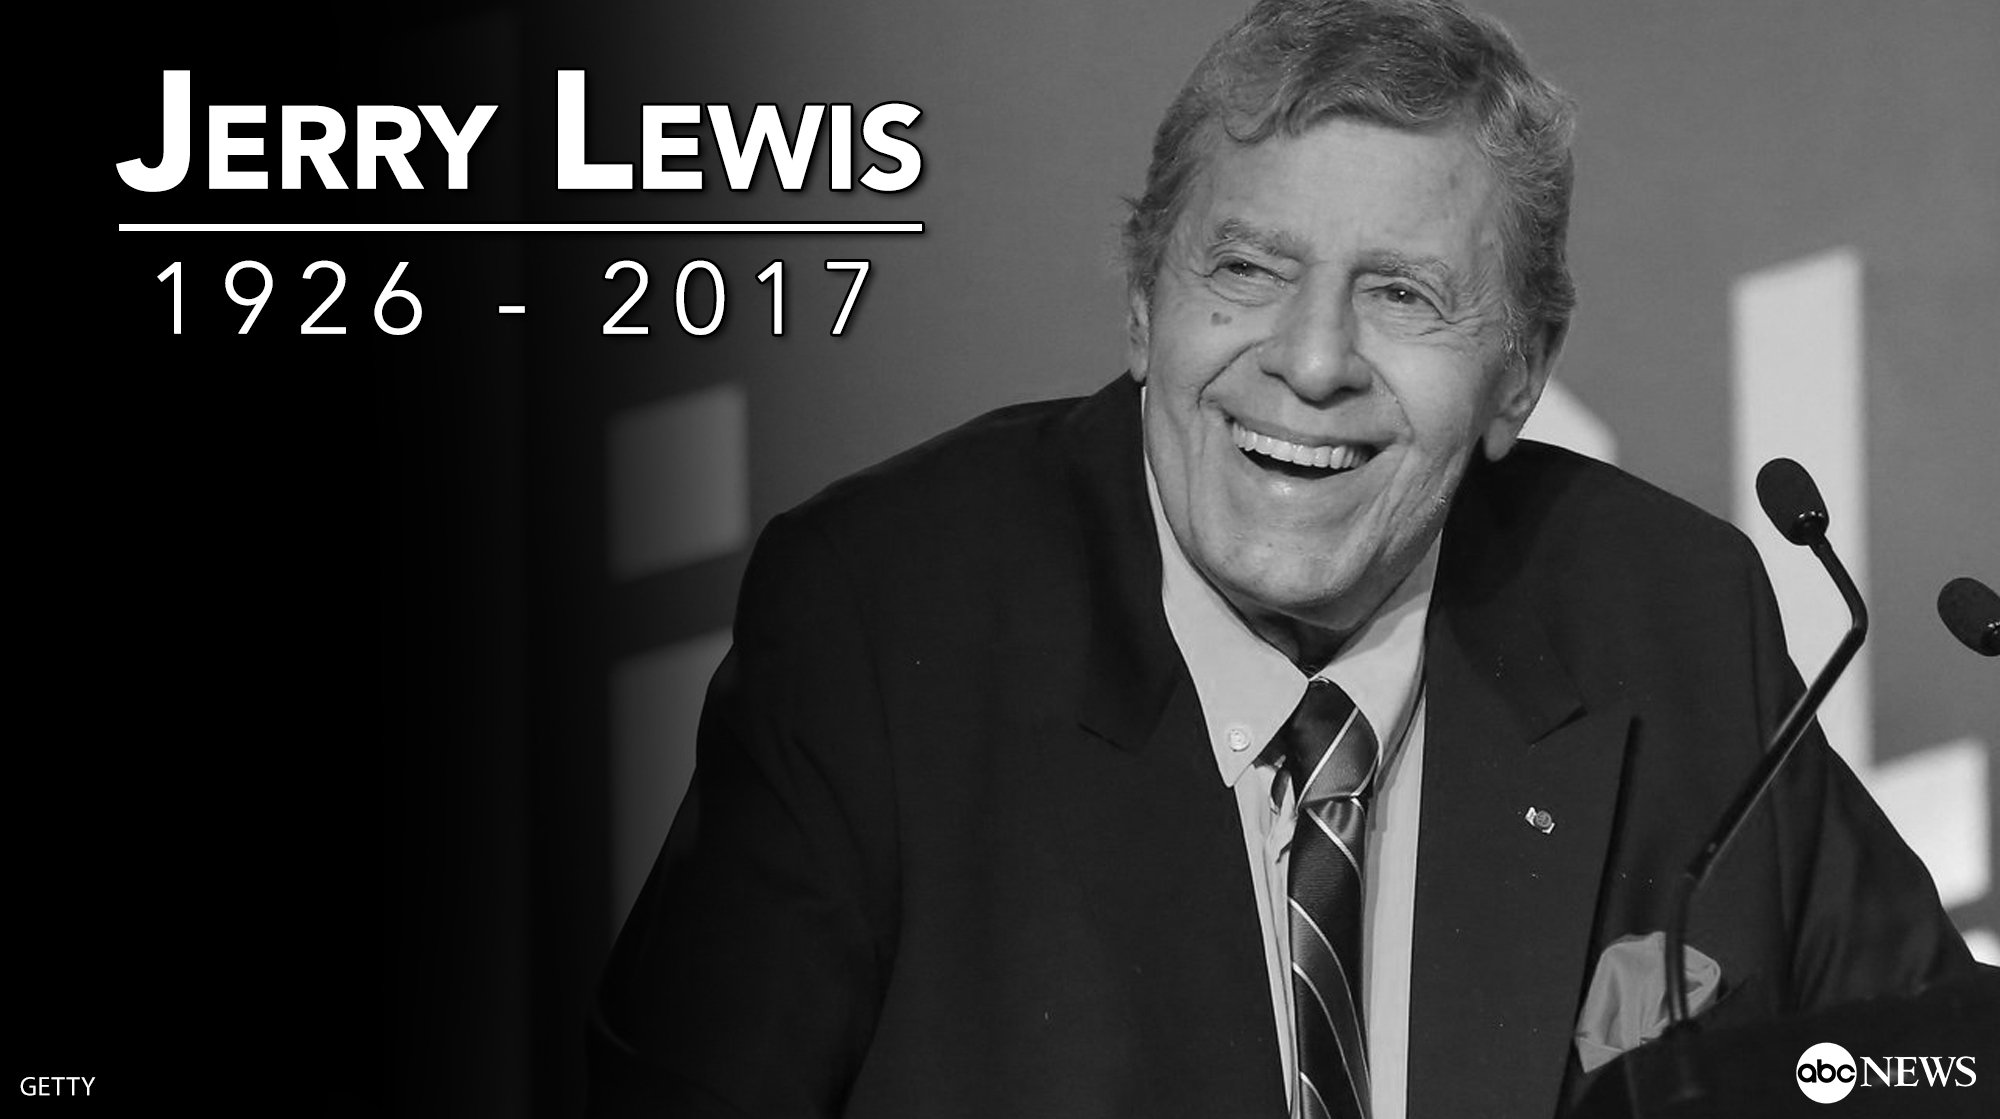 JUST IN: Iconic comedian Jerry Lewis has died at the age of 91, publicist says. https://t.co/jGc9vHwGmY https://t.co/yg35RGufrp